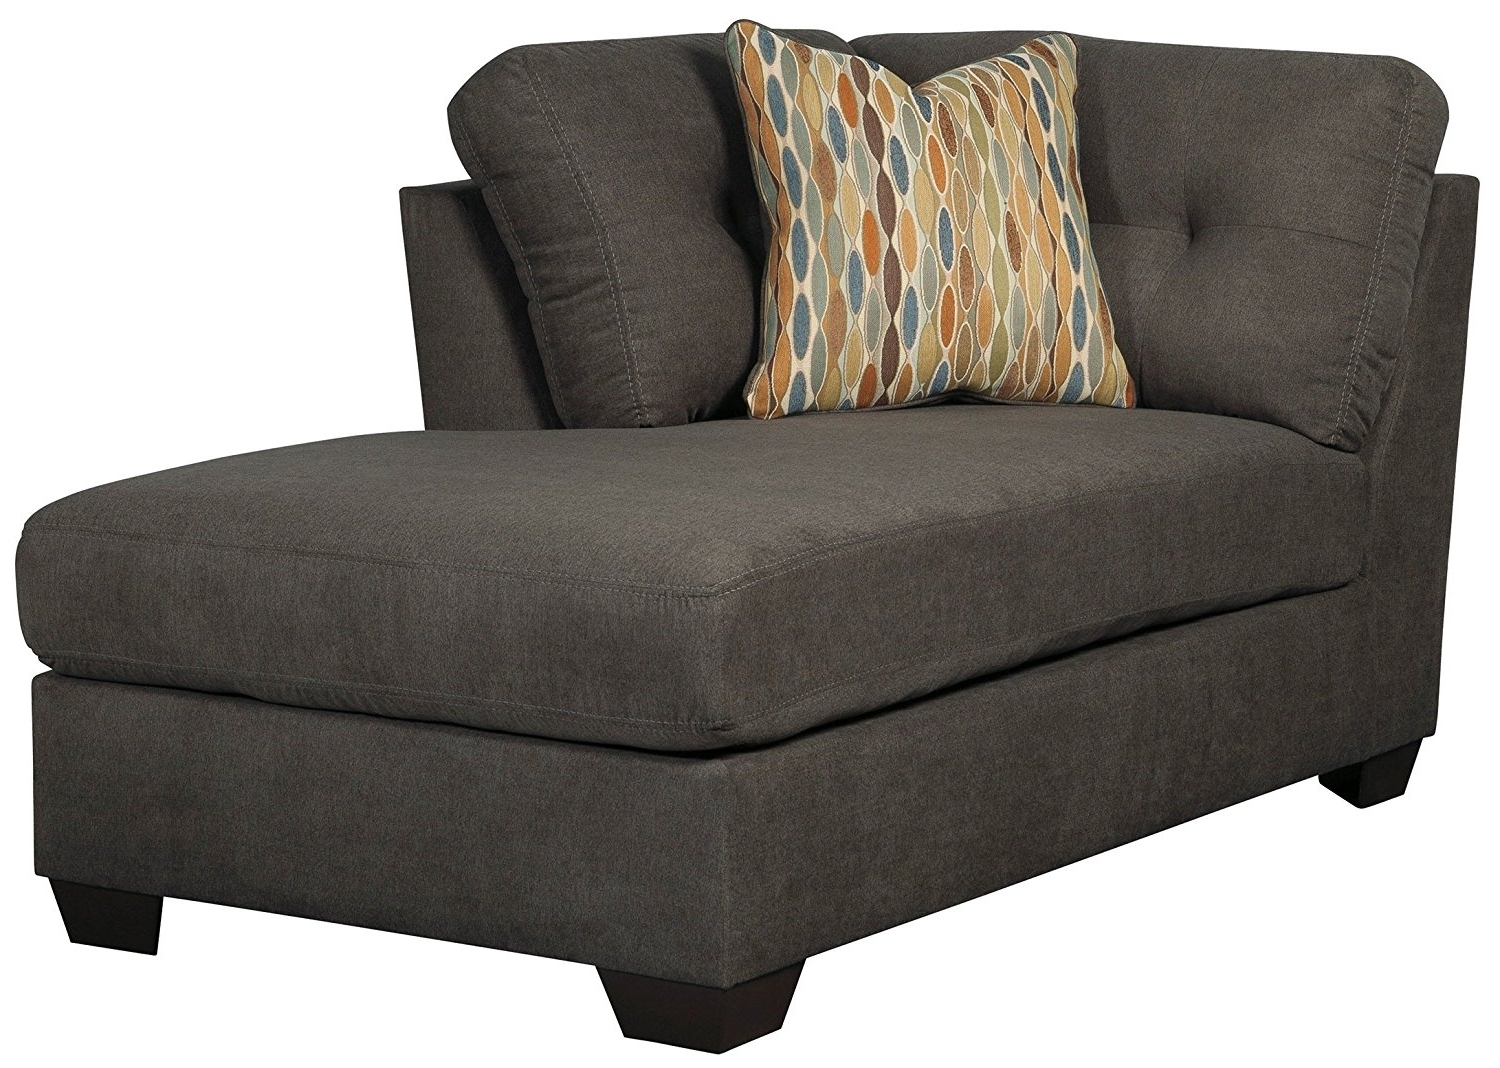 Amazon: Ashley Furniture Delta City Right Corner Chaise Lounge Pertaining To Best And Newest Ashley Furniture Chaise Lounge Chairs (View 2 of 15)